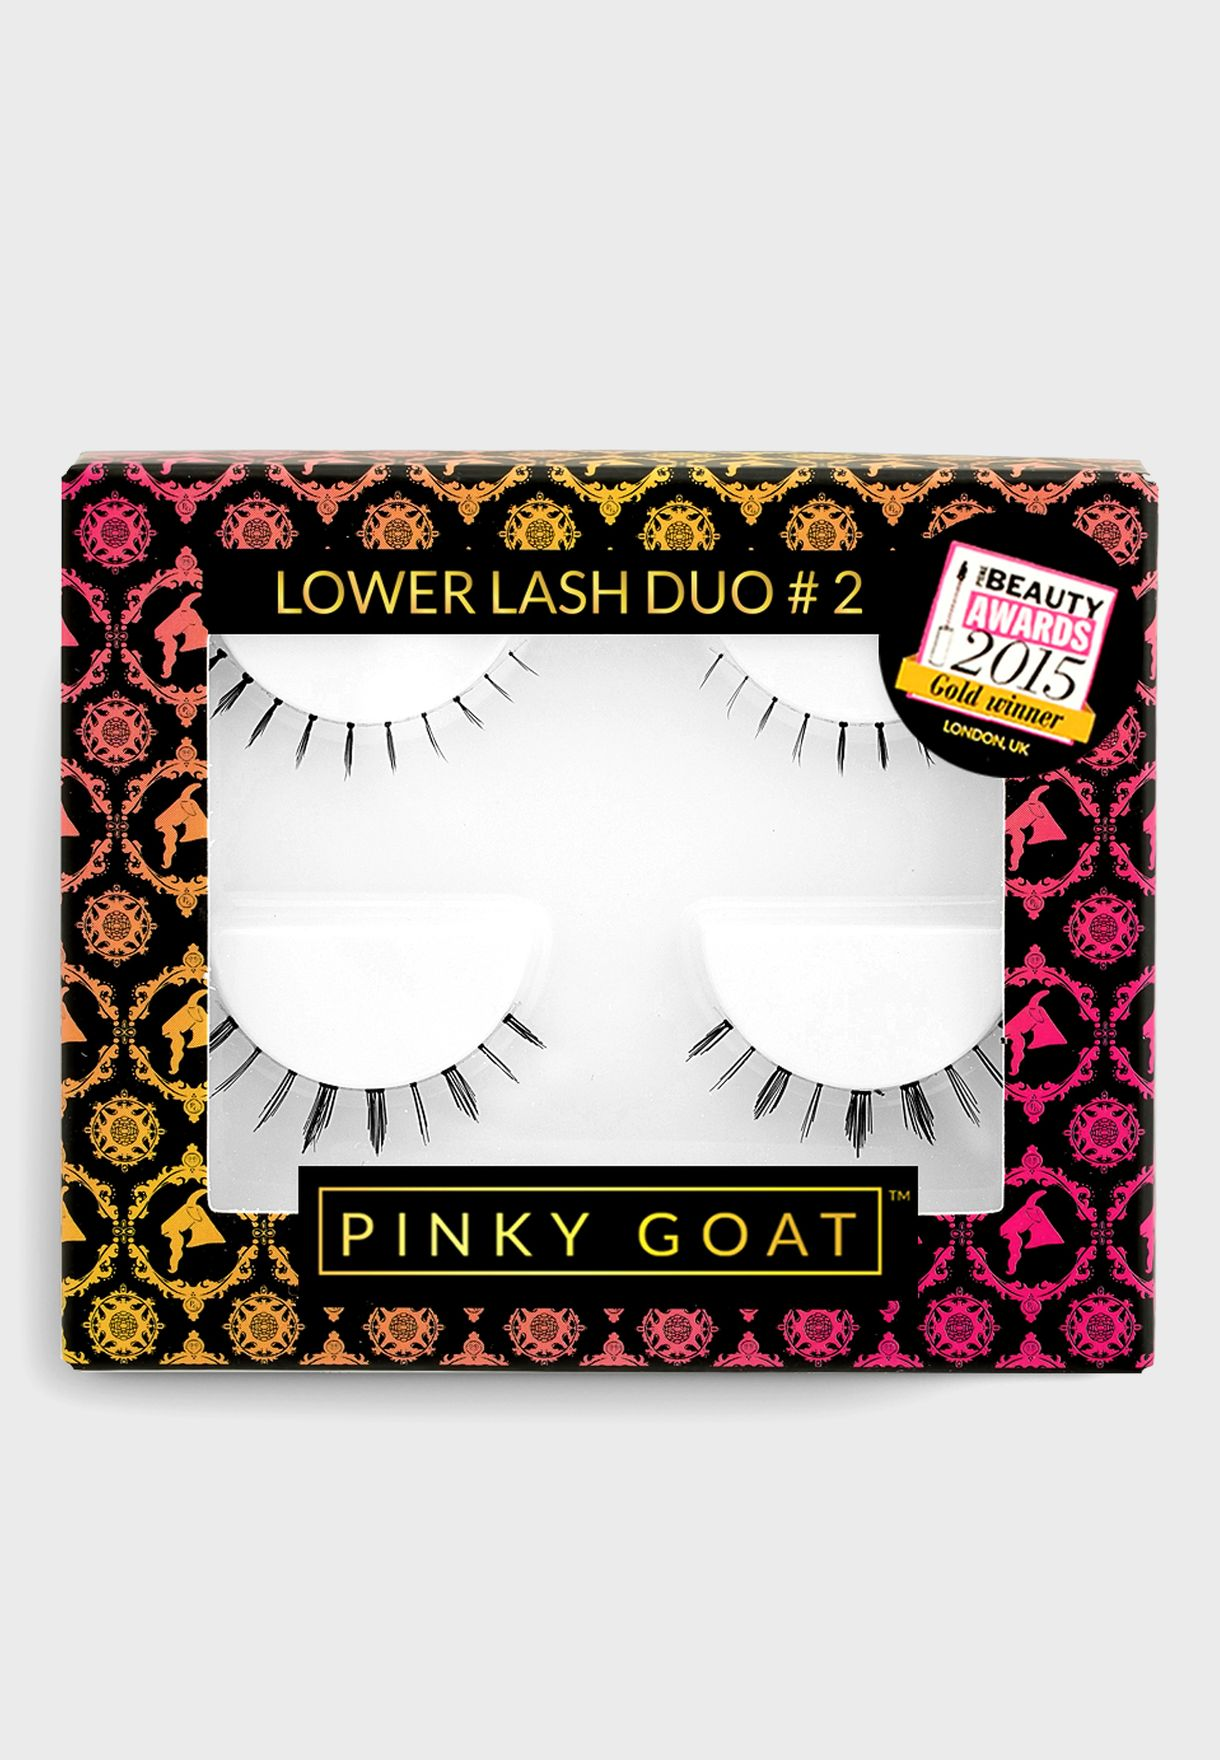 Lower Lash Duo #2